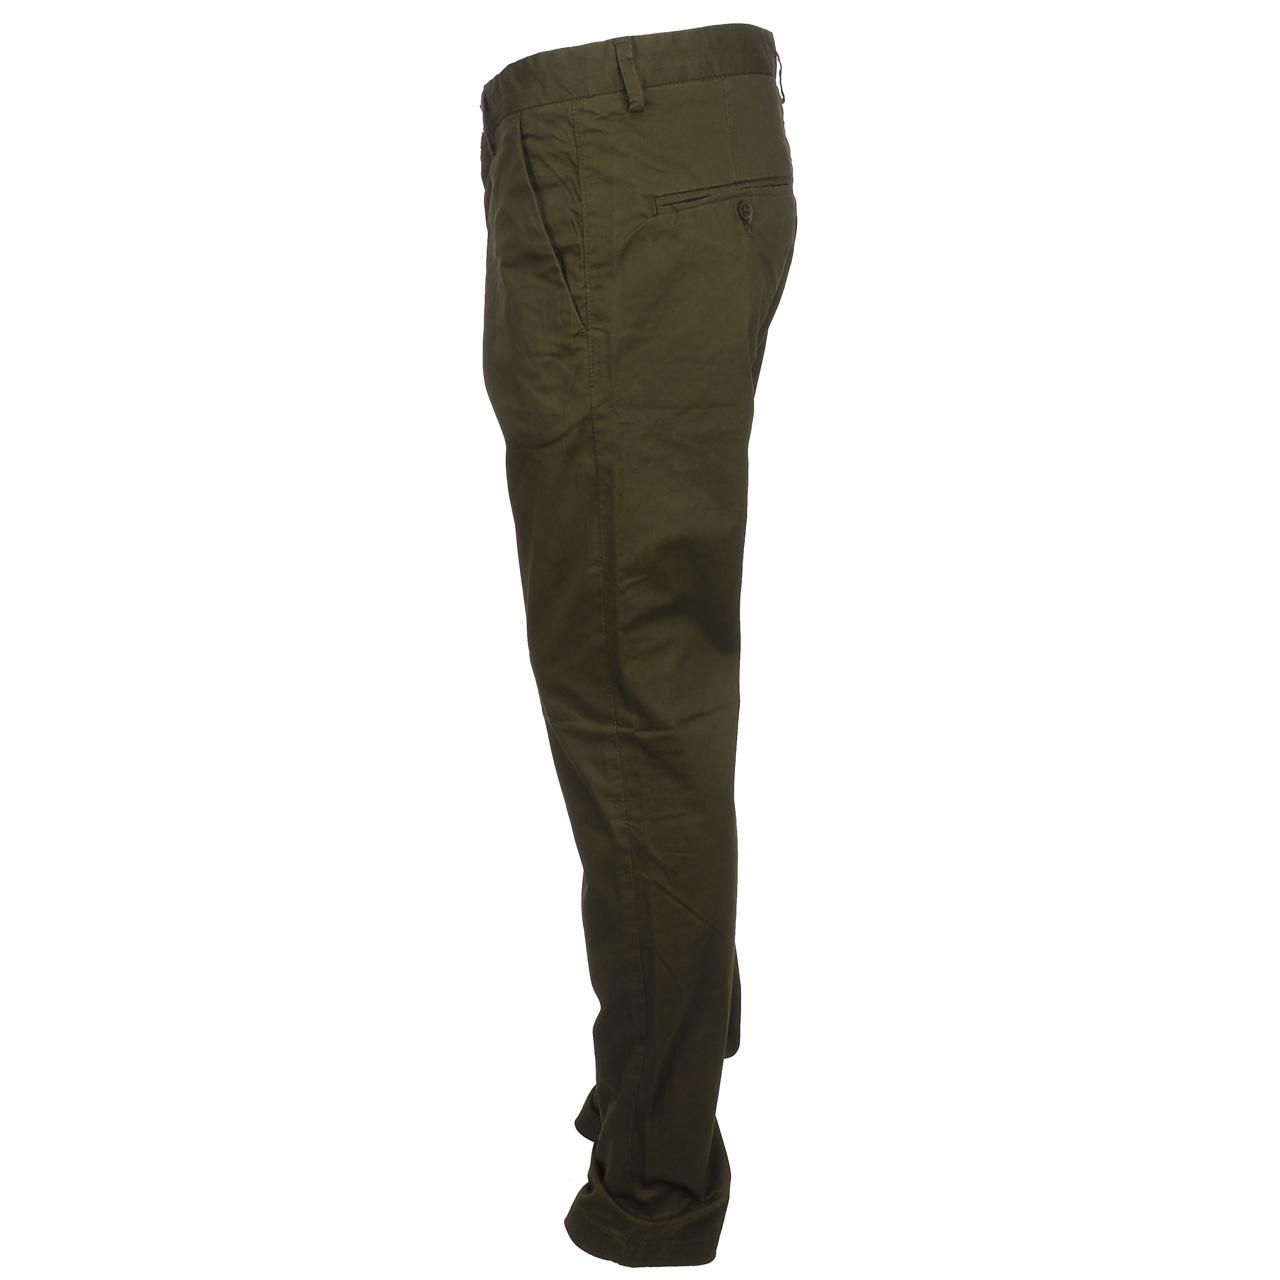 Hose-Teddy-Smith-Chino-Slim-Blk-Kaffee-Brown-12103-Neu Indexbild 2